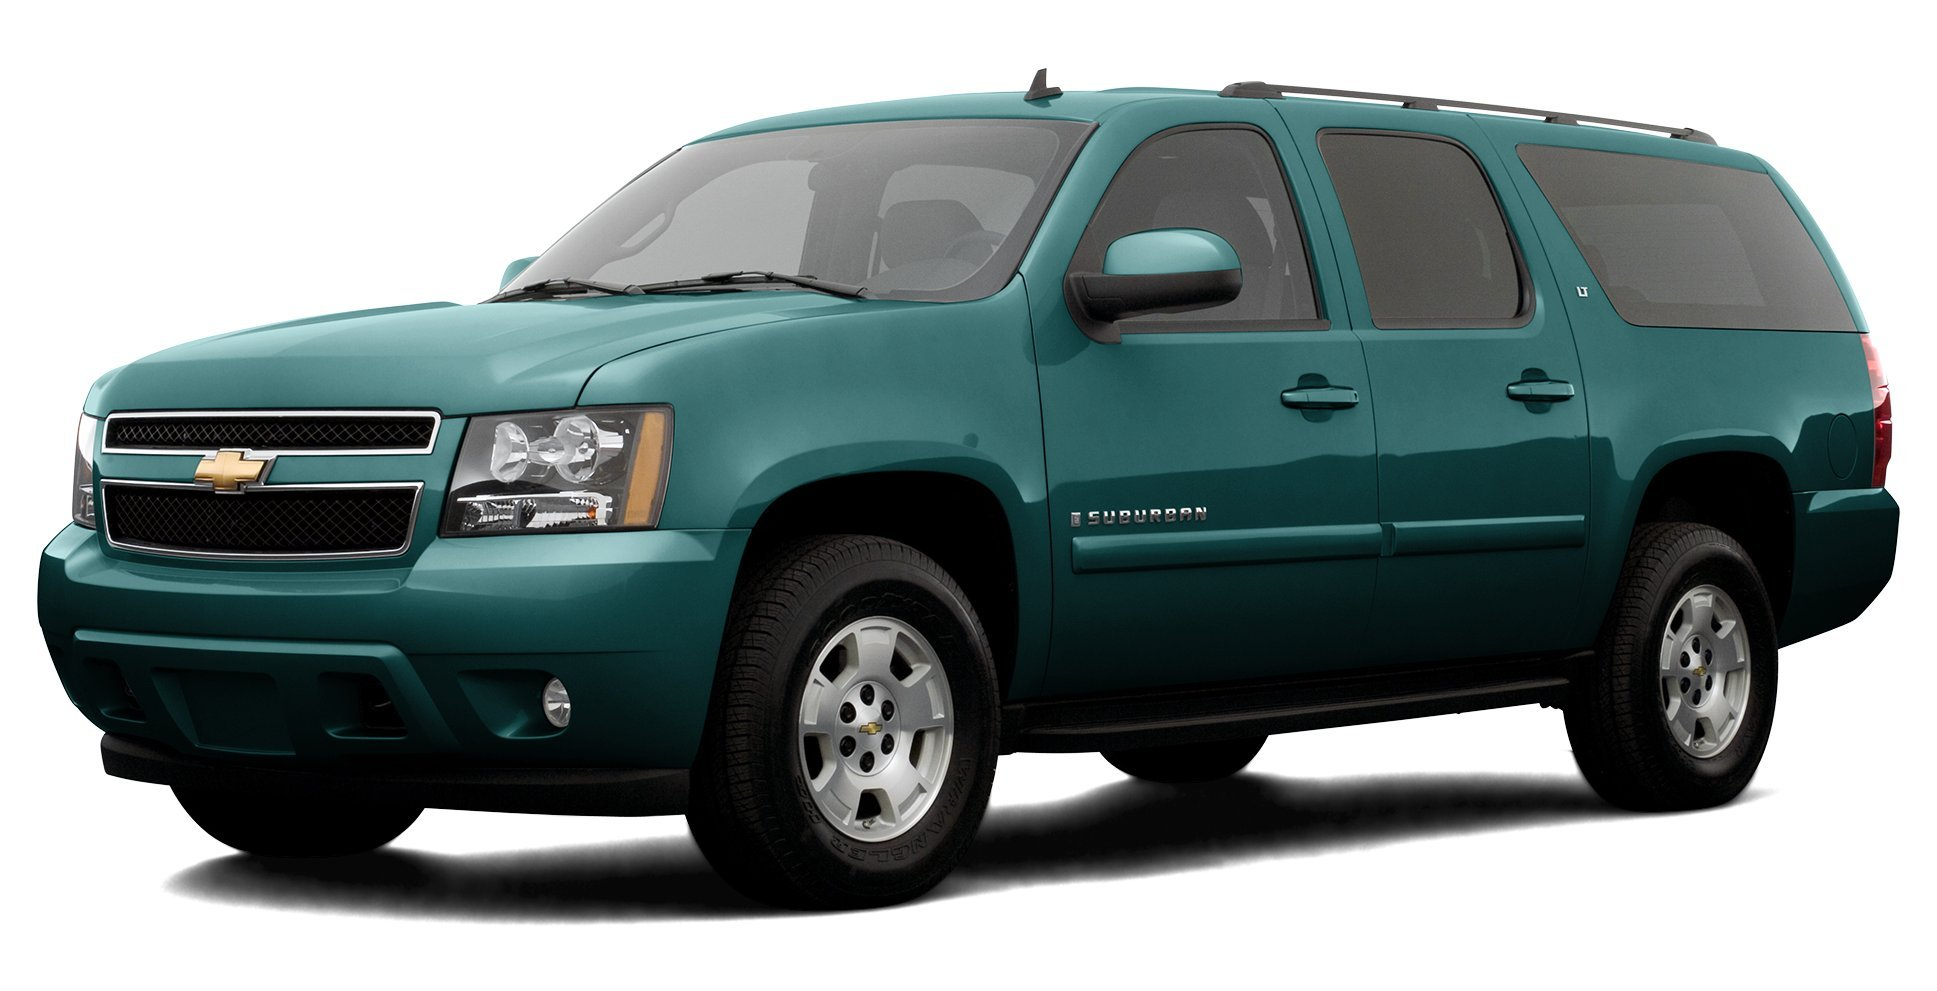 2007 gmc yukon xl 2500 reviews images and specs vehicles. Black Bedroom Furniture Sets. Home Design Ideas